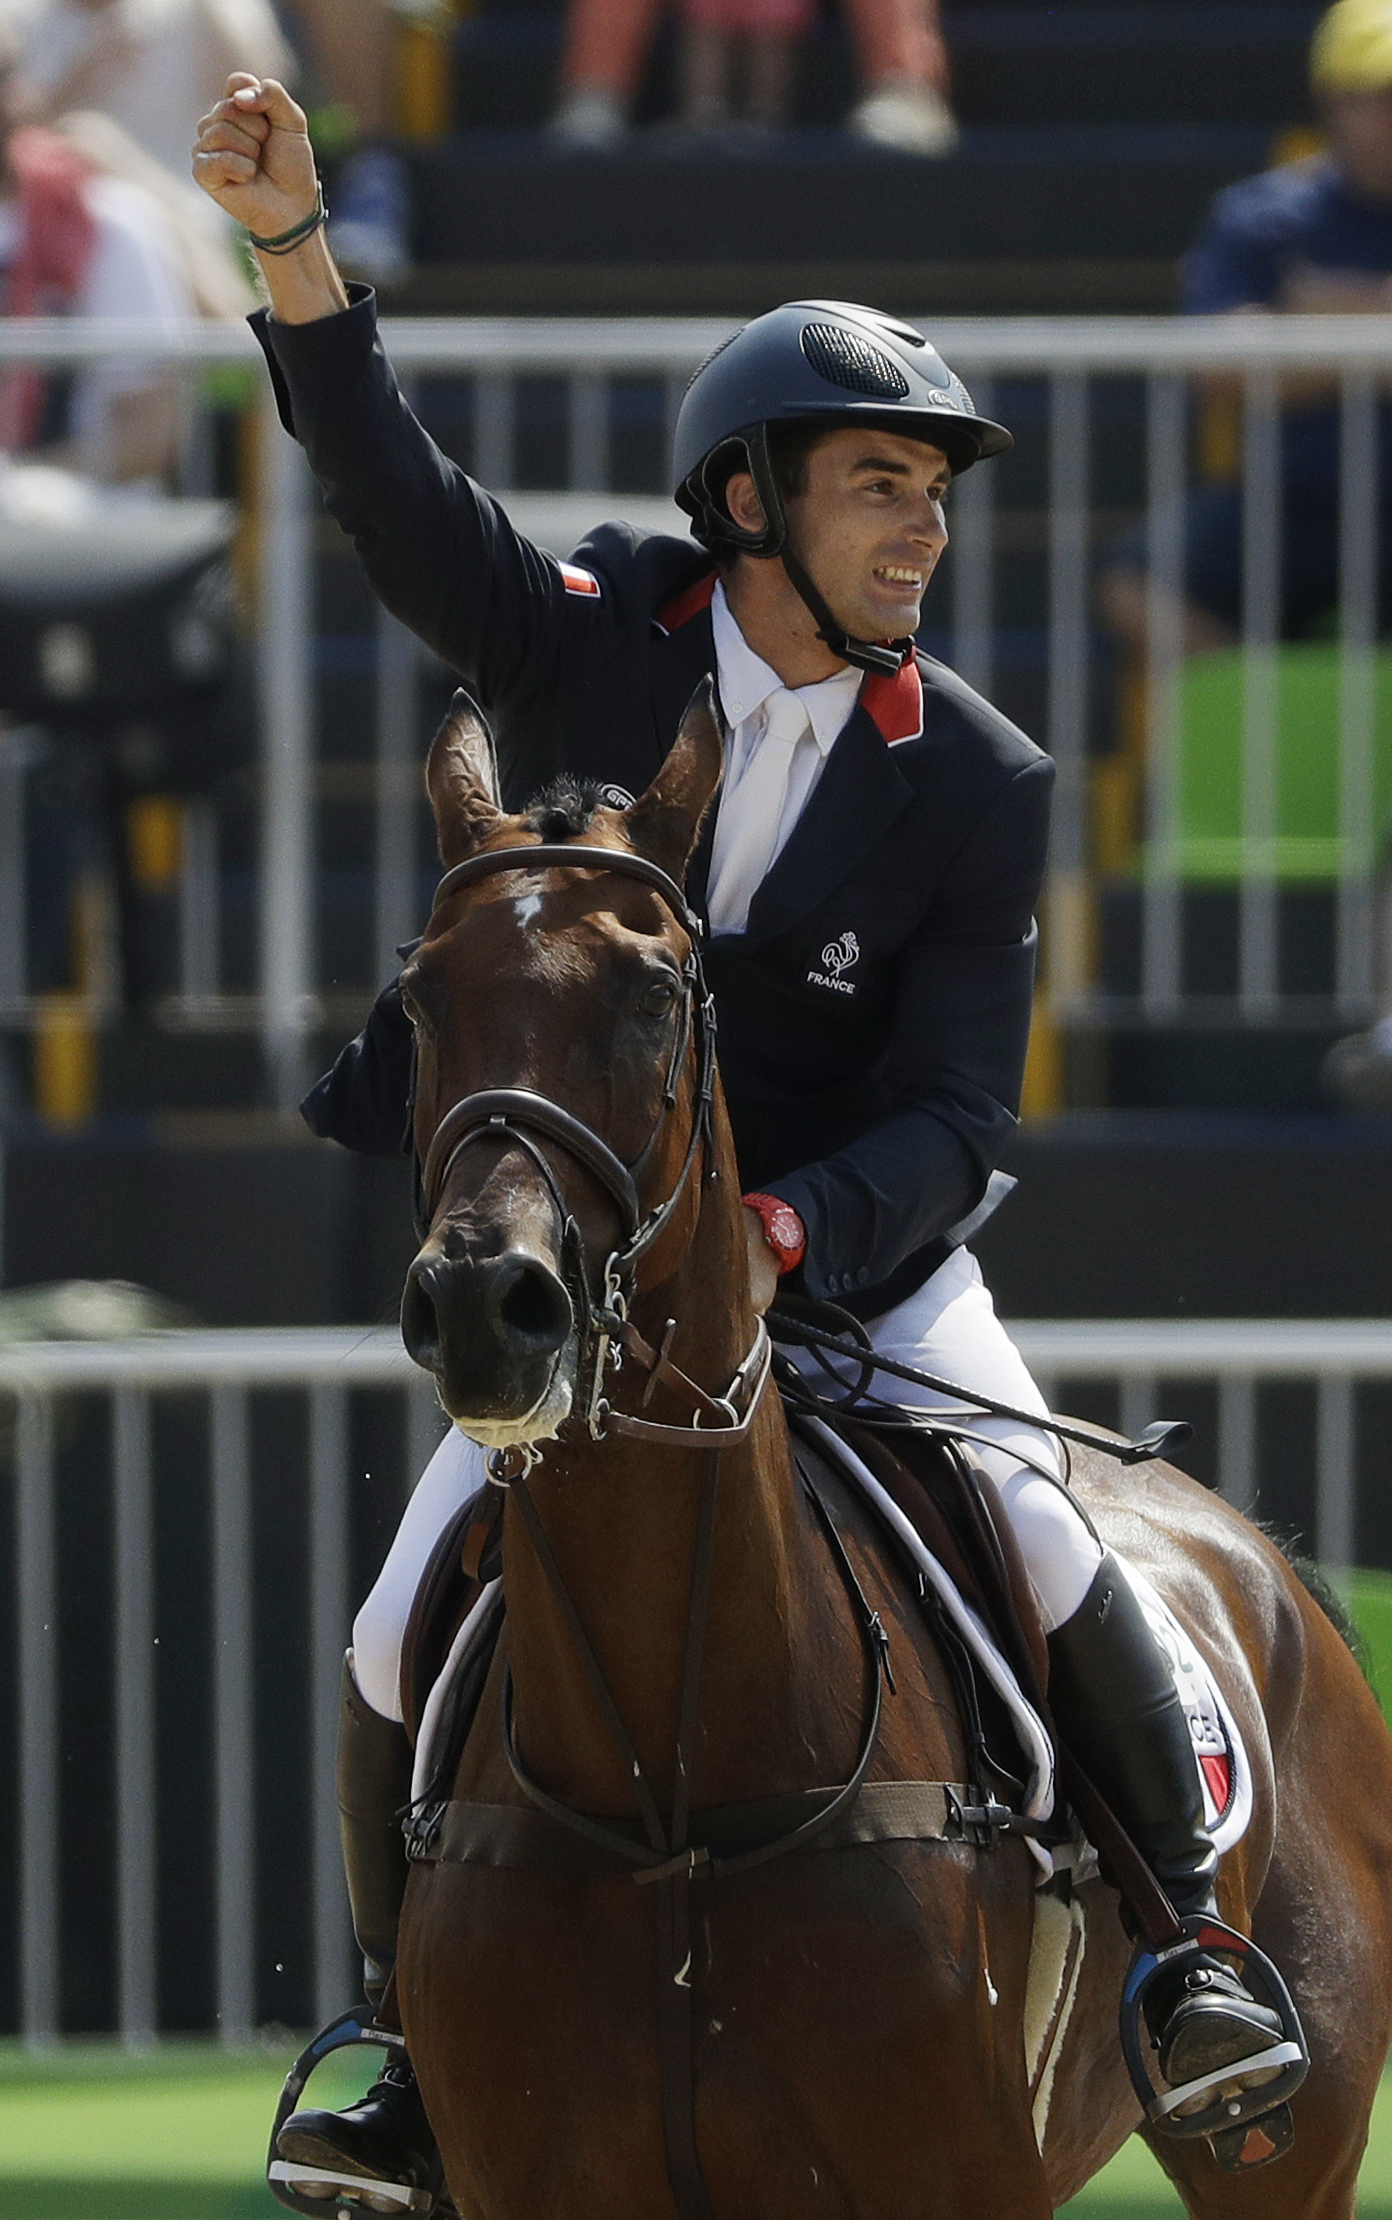 Astier Nicolas, of France, riding Piafde B'Neville, celebrates after competing in the equestrian eventing team show jumping phase at the 2016 Summer Olympics in Rio de Janeiro, Brazil, Tuesday, Aug. 9, 2016. (AP Photo/John Locher)